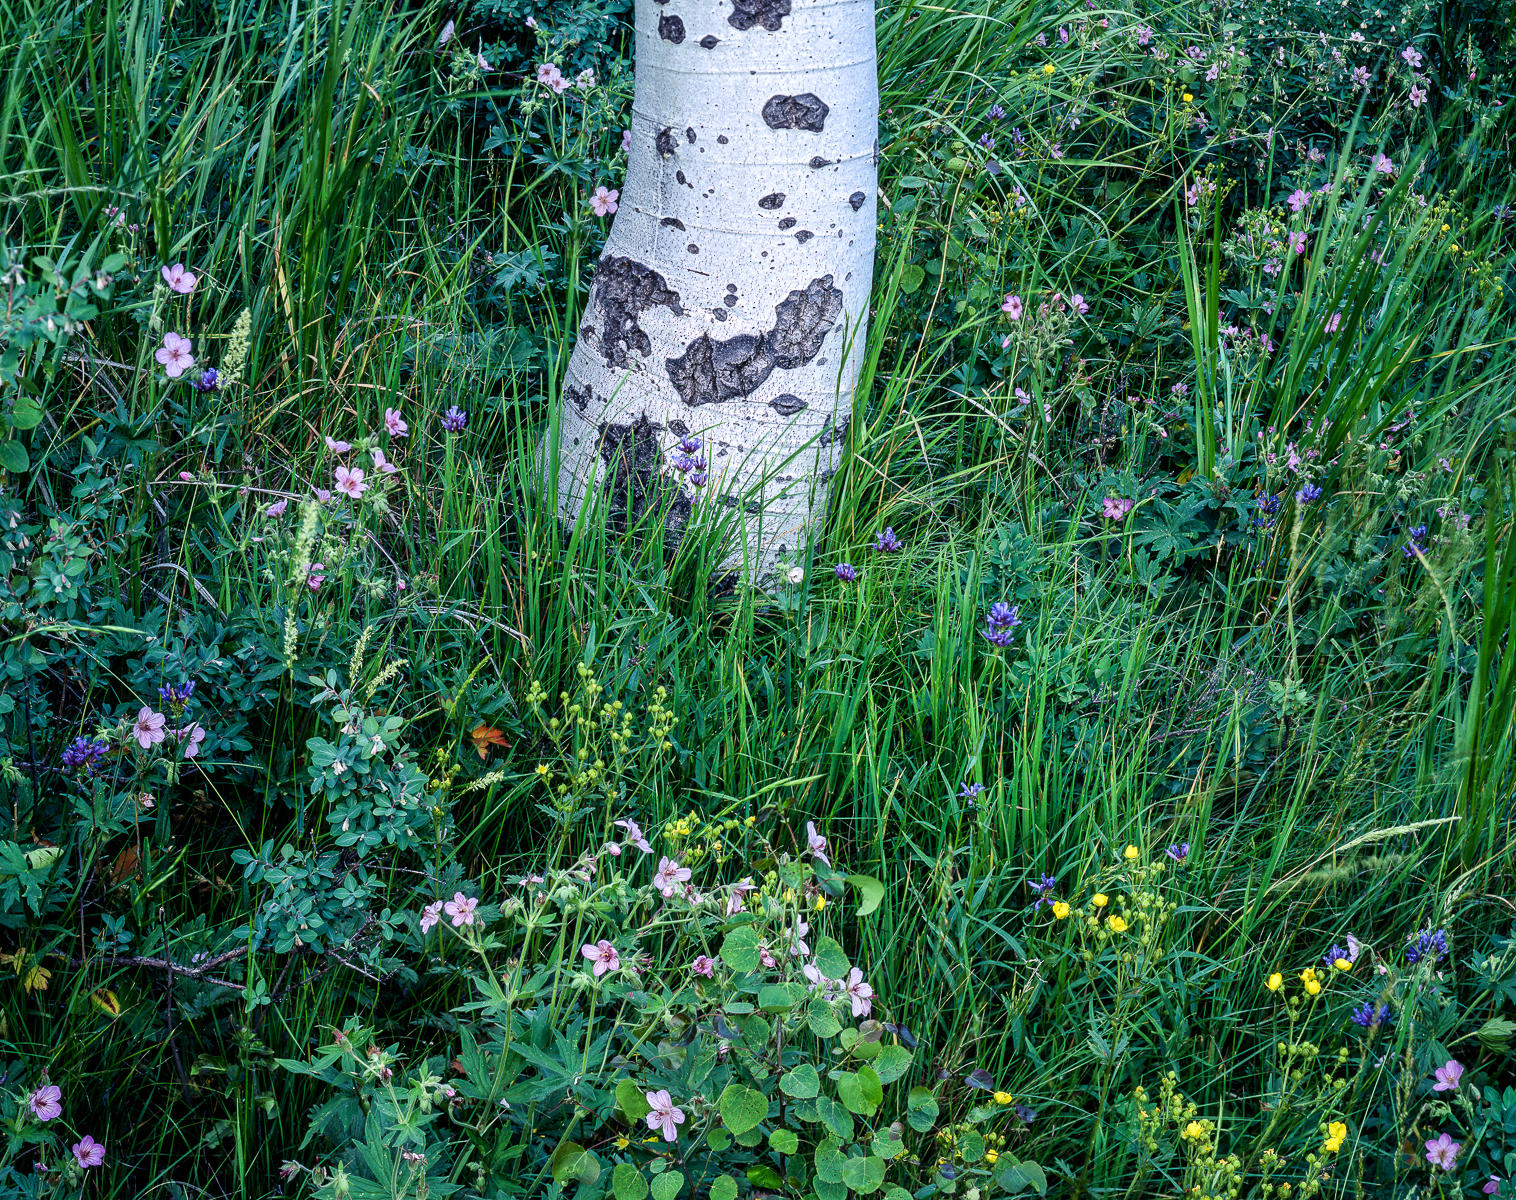 Pine Trunk and Wildflowers : landscapes : TIMOTHY FLOYD PHOTOGRAPHER, NATURE PHOTOGRAPHY, PHOTO ESSAYS, PHOTOJOURNALISM